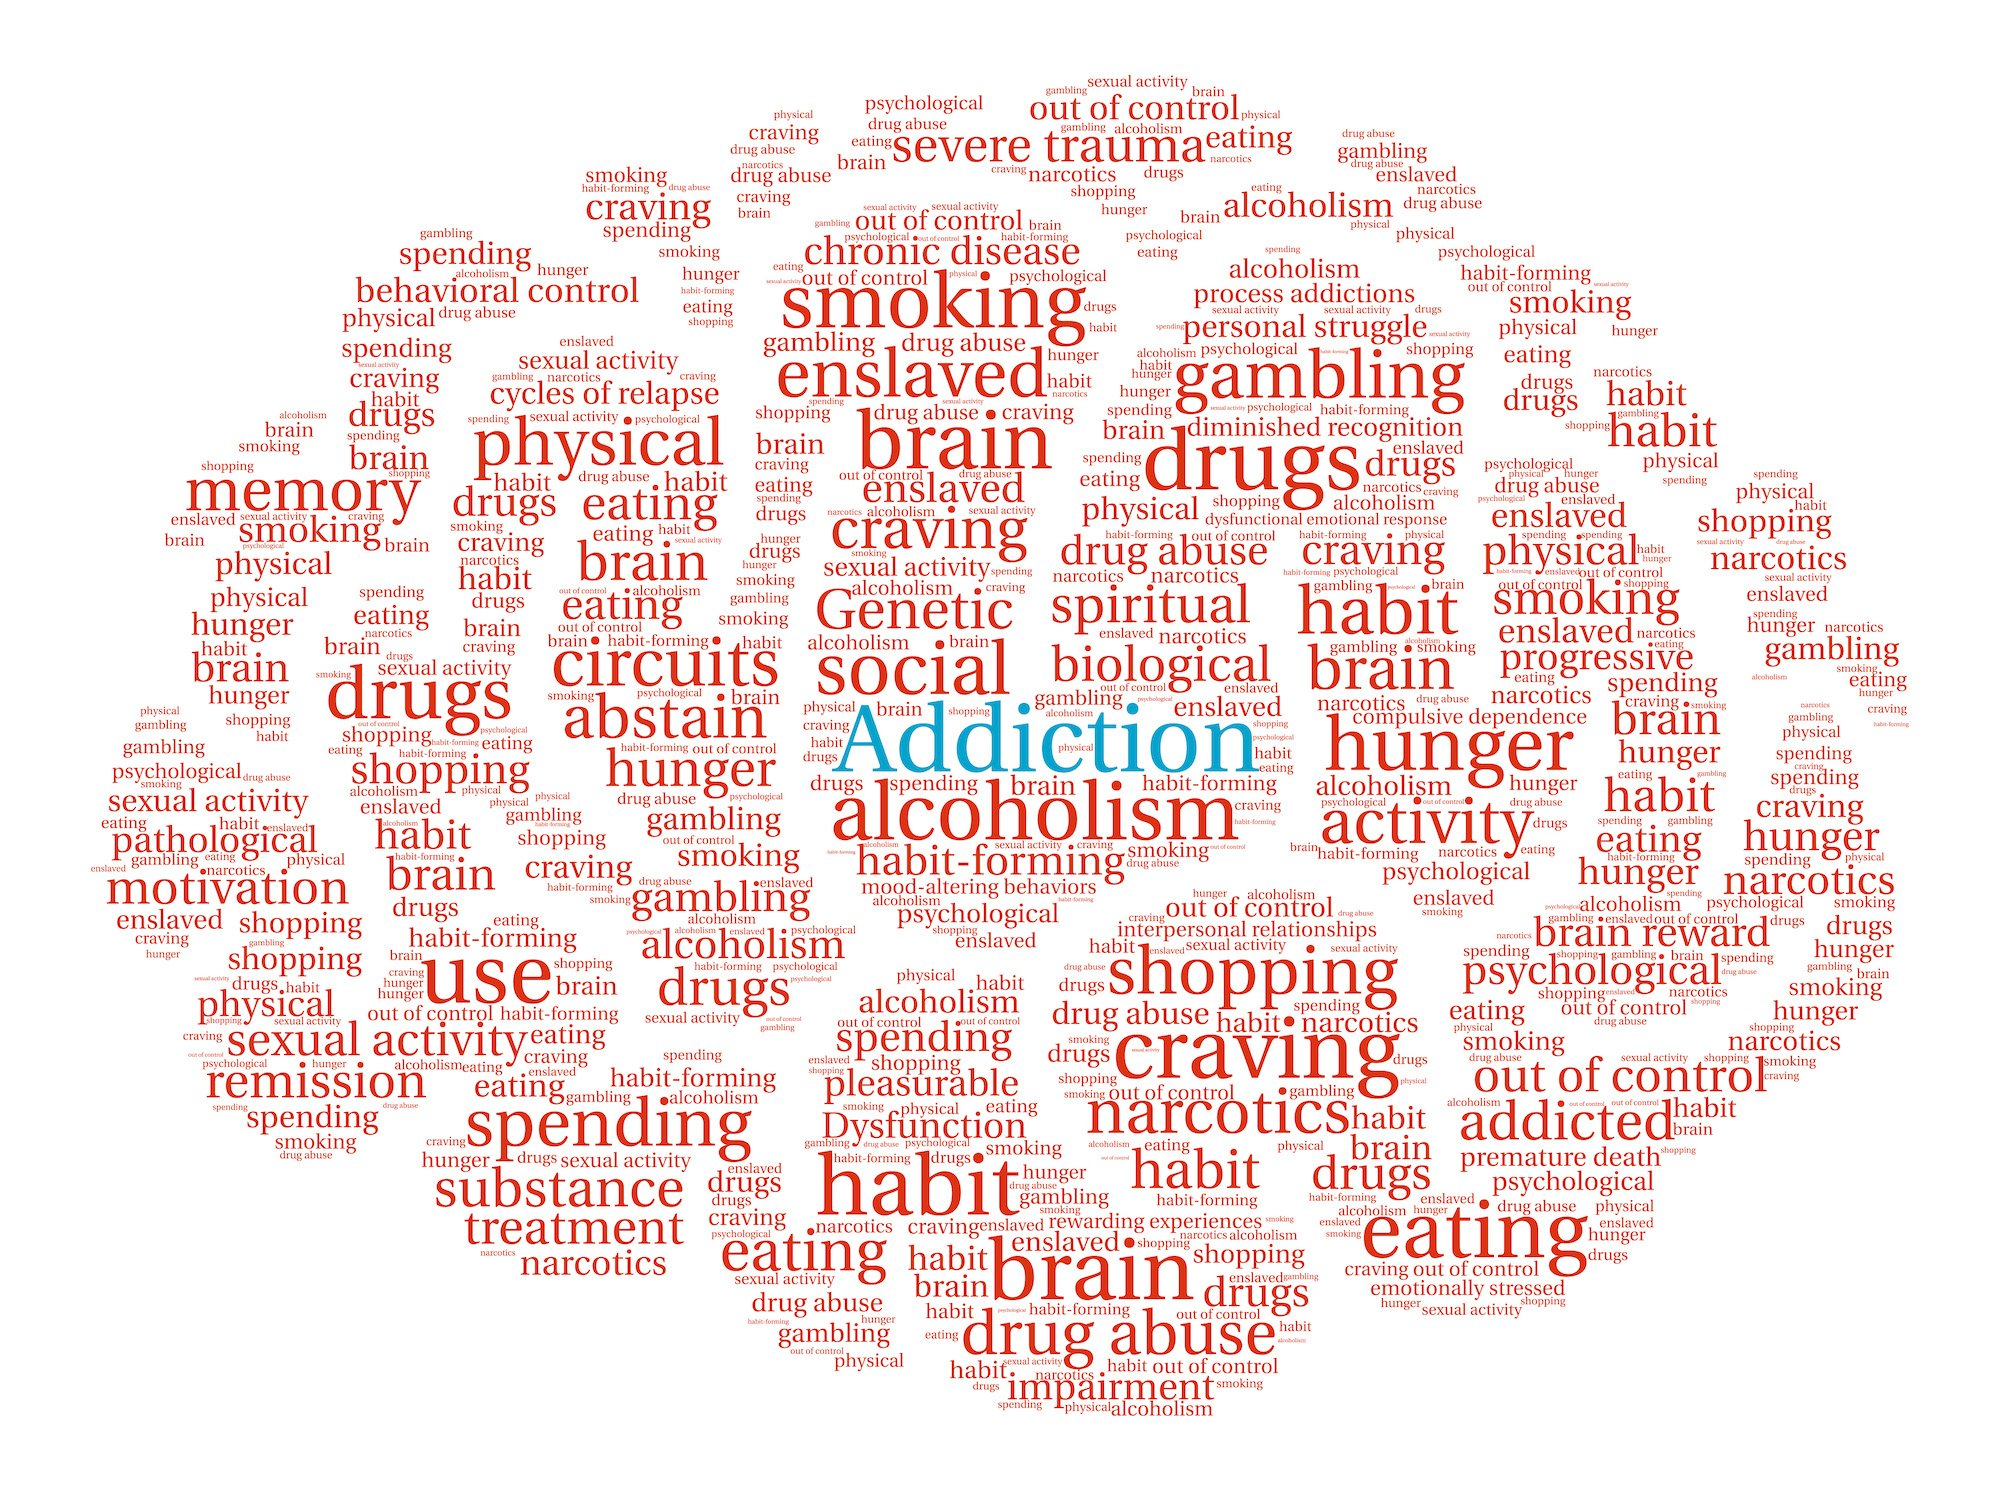 Genetics and Addiction